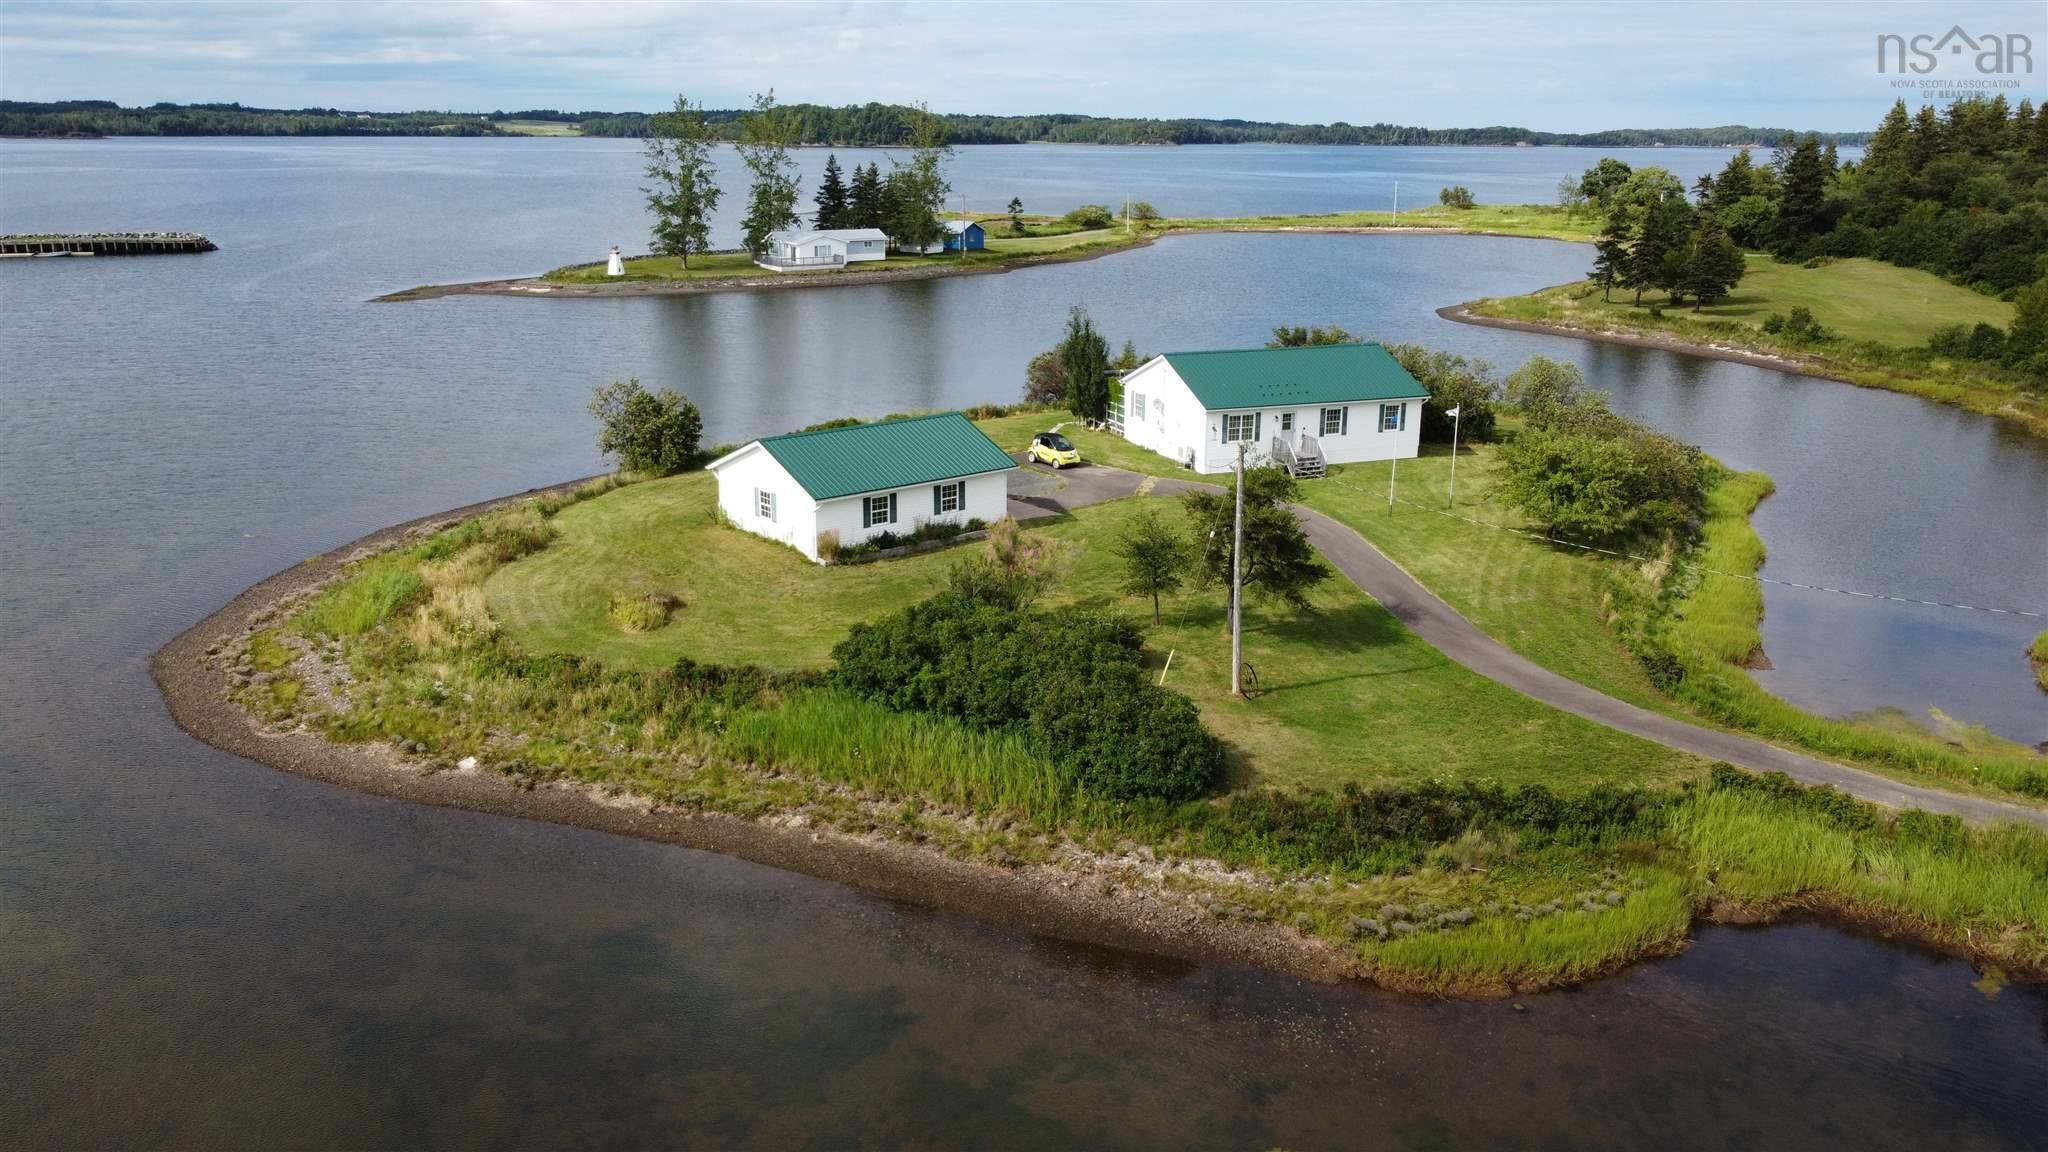 Main Photo: 1709 Shore Road in Merigomish: 108-Rural Pictou County Residential for sale (Northern Region)  : MLS®# 202120402